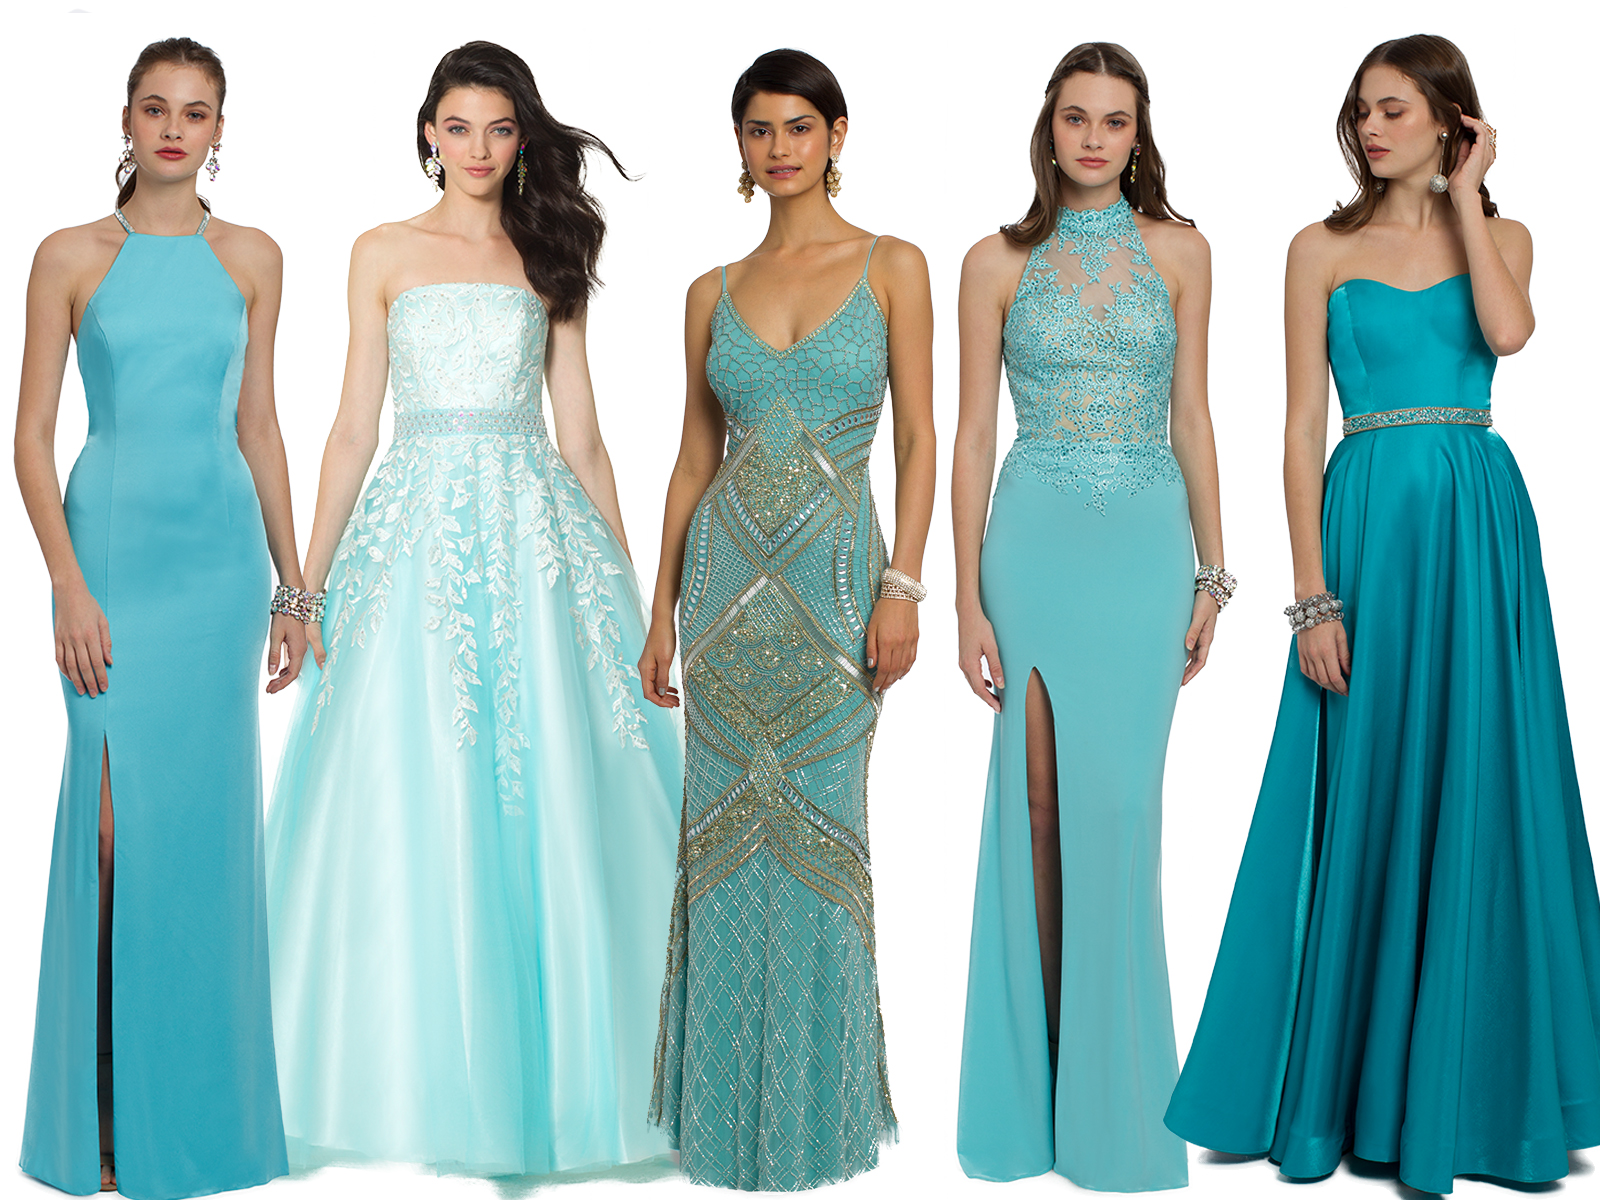 Turquoise Prom Dresses by Camille La Vie